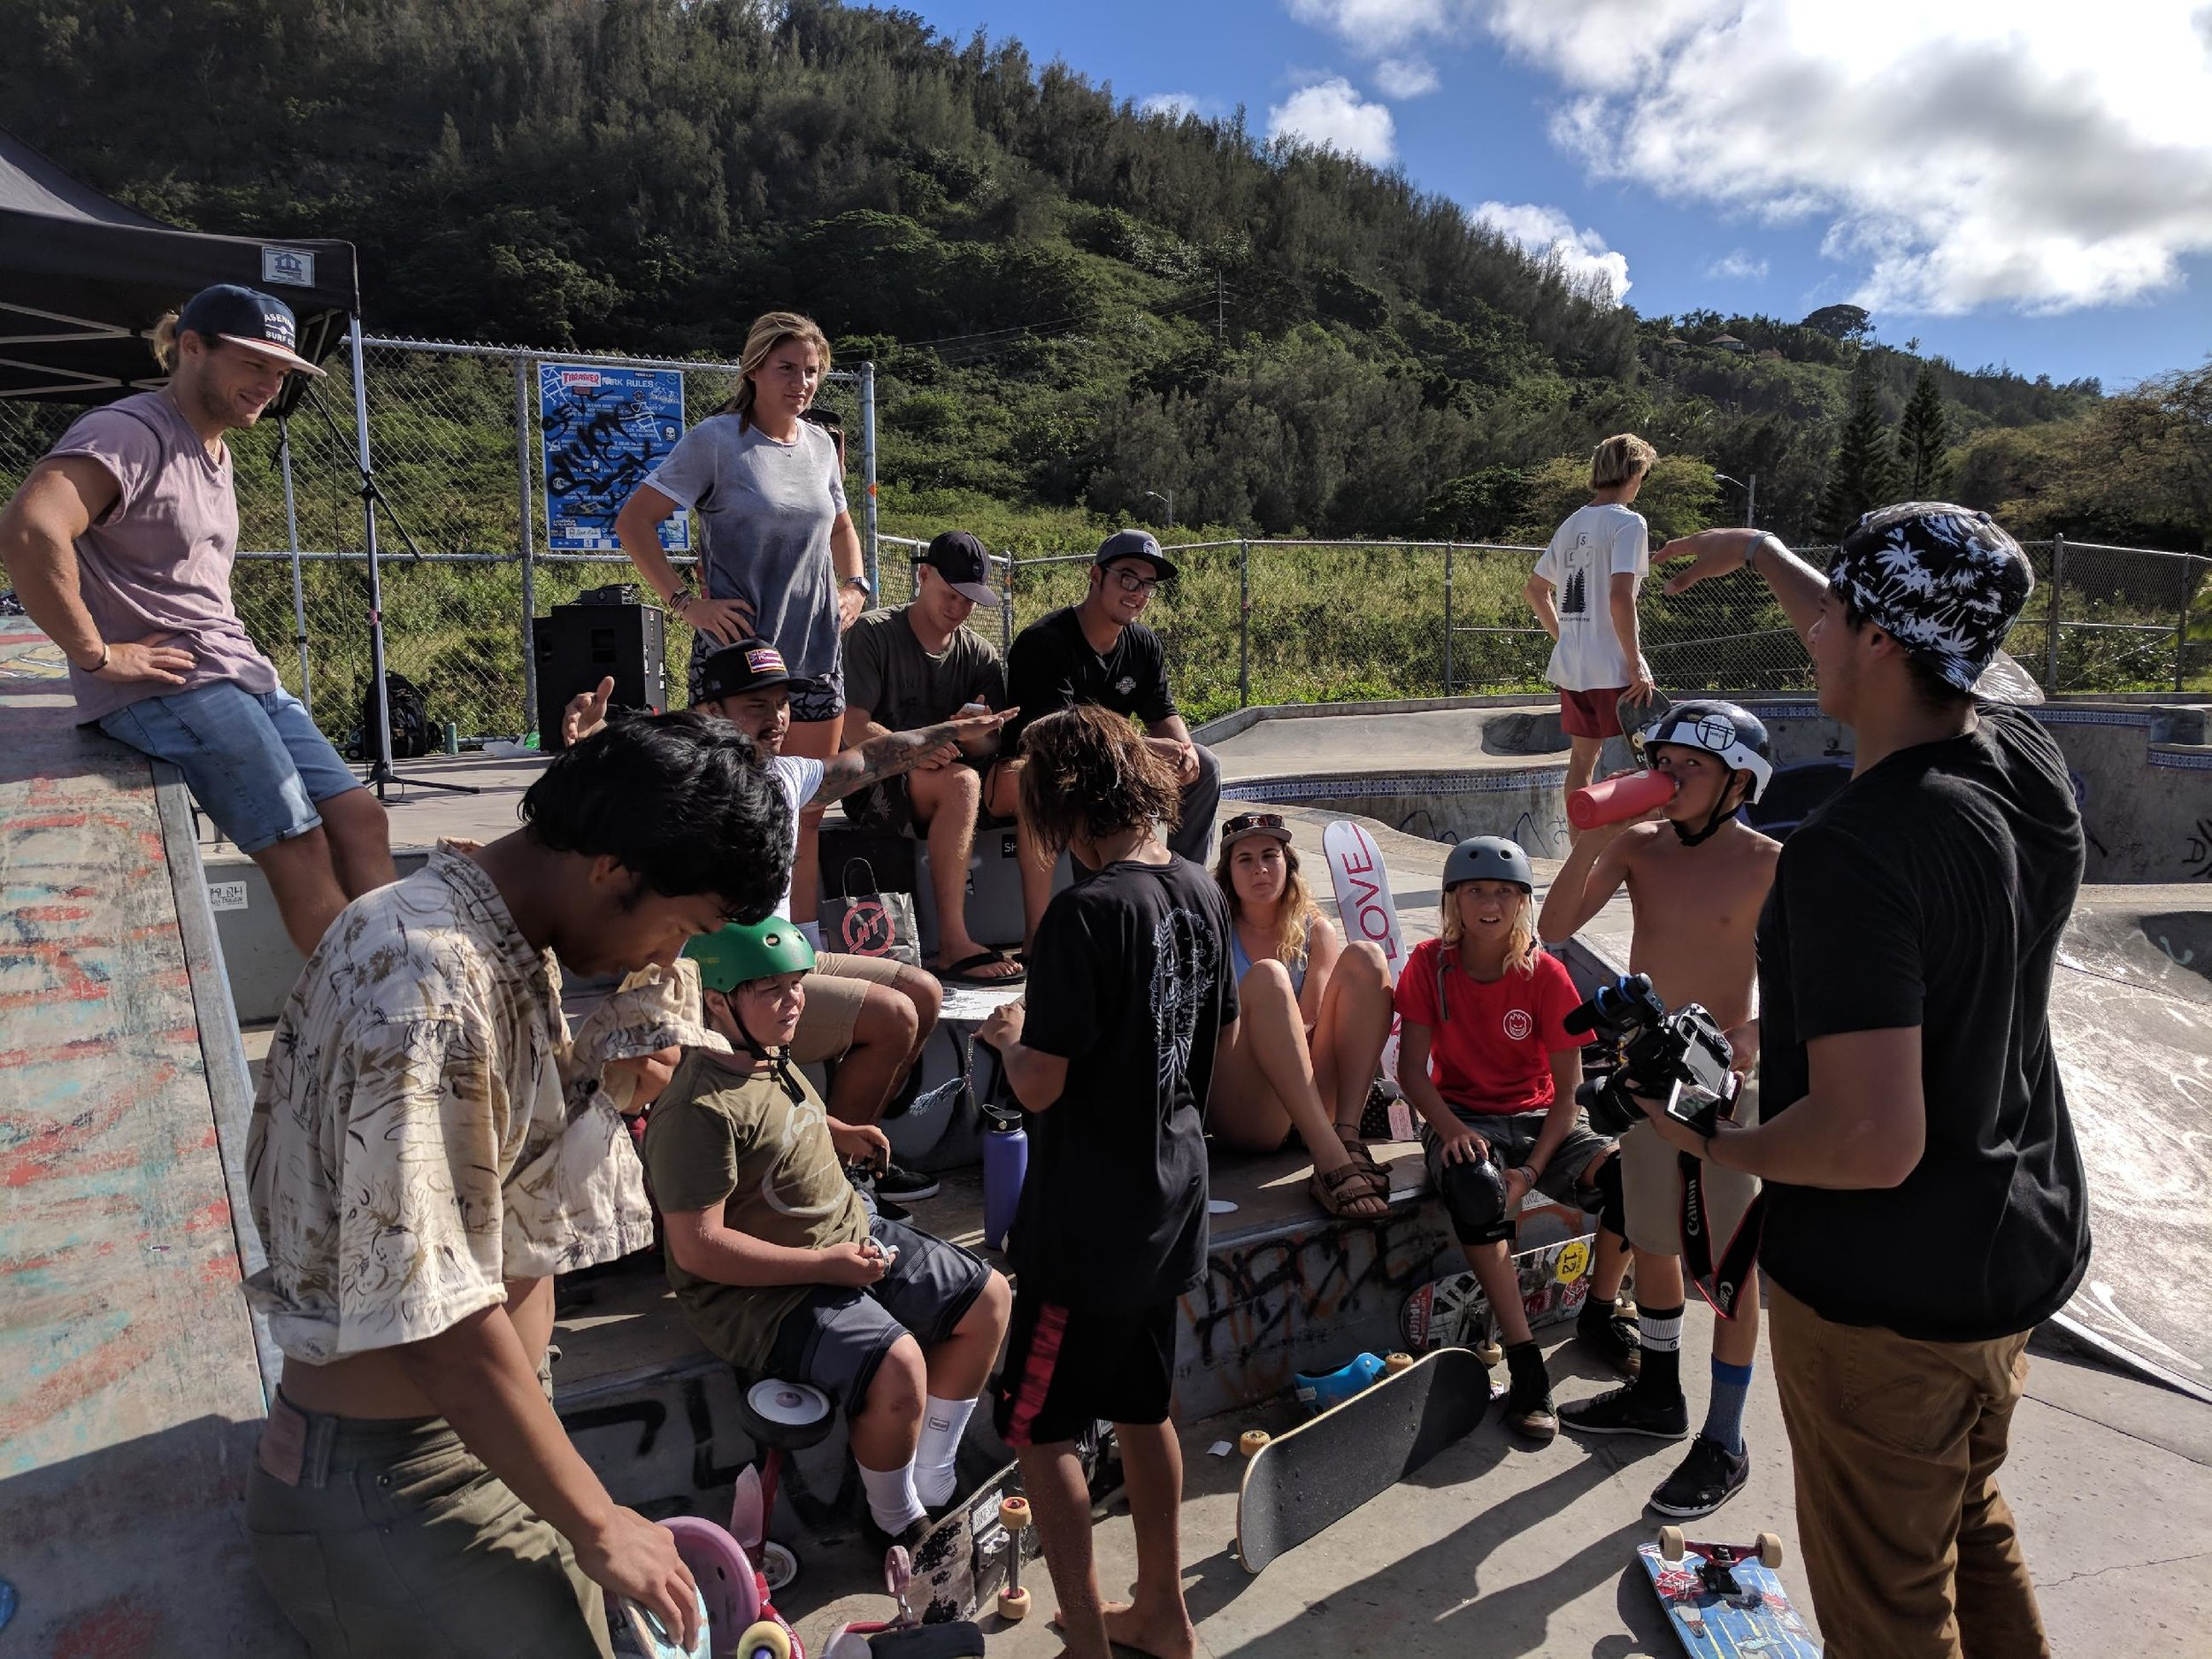 Stoked the event at Banzai went great at 2pm Saturday & that kids came back to Sunset Community Church after. Congrats Lucas winning a Complete 1L Deck, and to the other winners of a 1L deck, hats, and stickers.